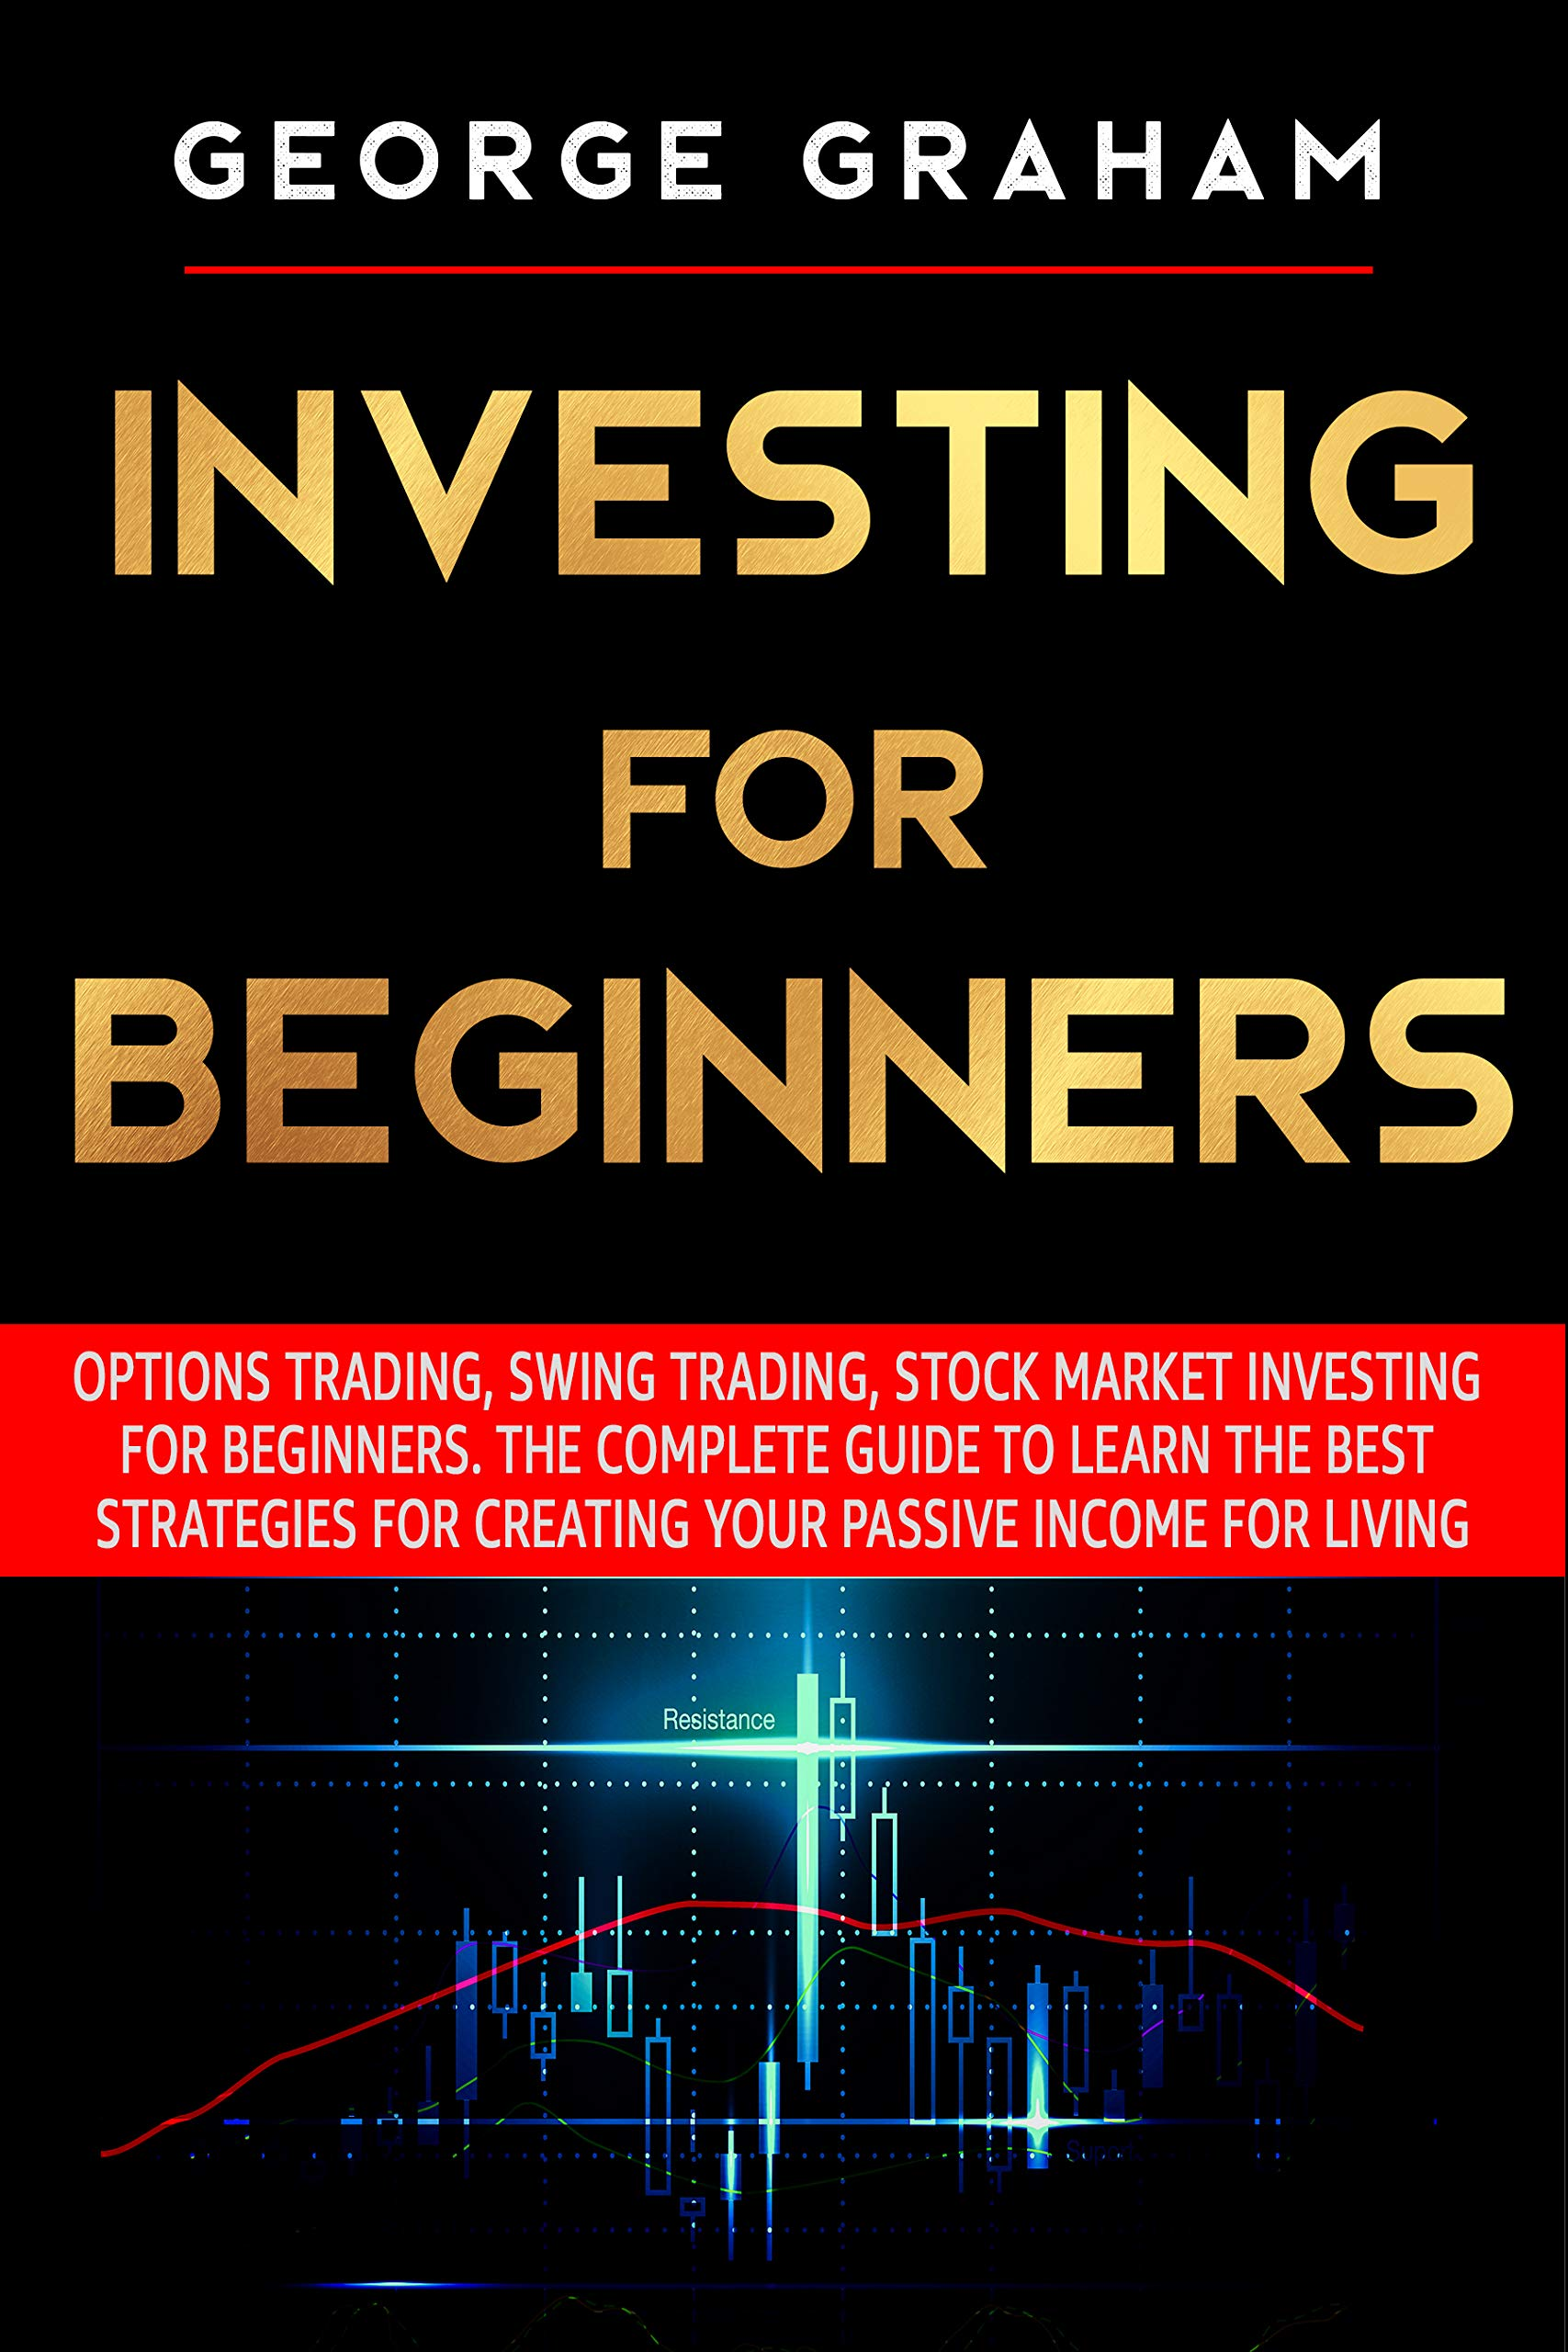 Investing for Beginners: Options Trading, Swing Trading, Stock Market Investing for Beginners. The Complete Guide to Learn the Best Strategies for Creating Your Passive Income for Living